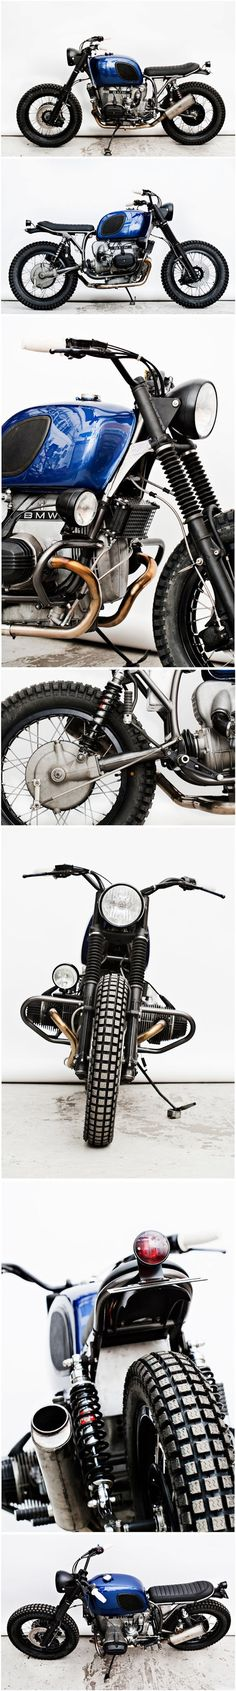 Brutal #BMW R100 RT by Wrench Monkees